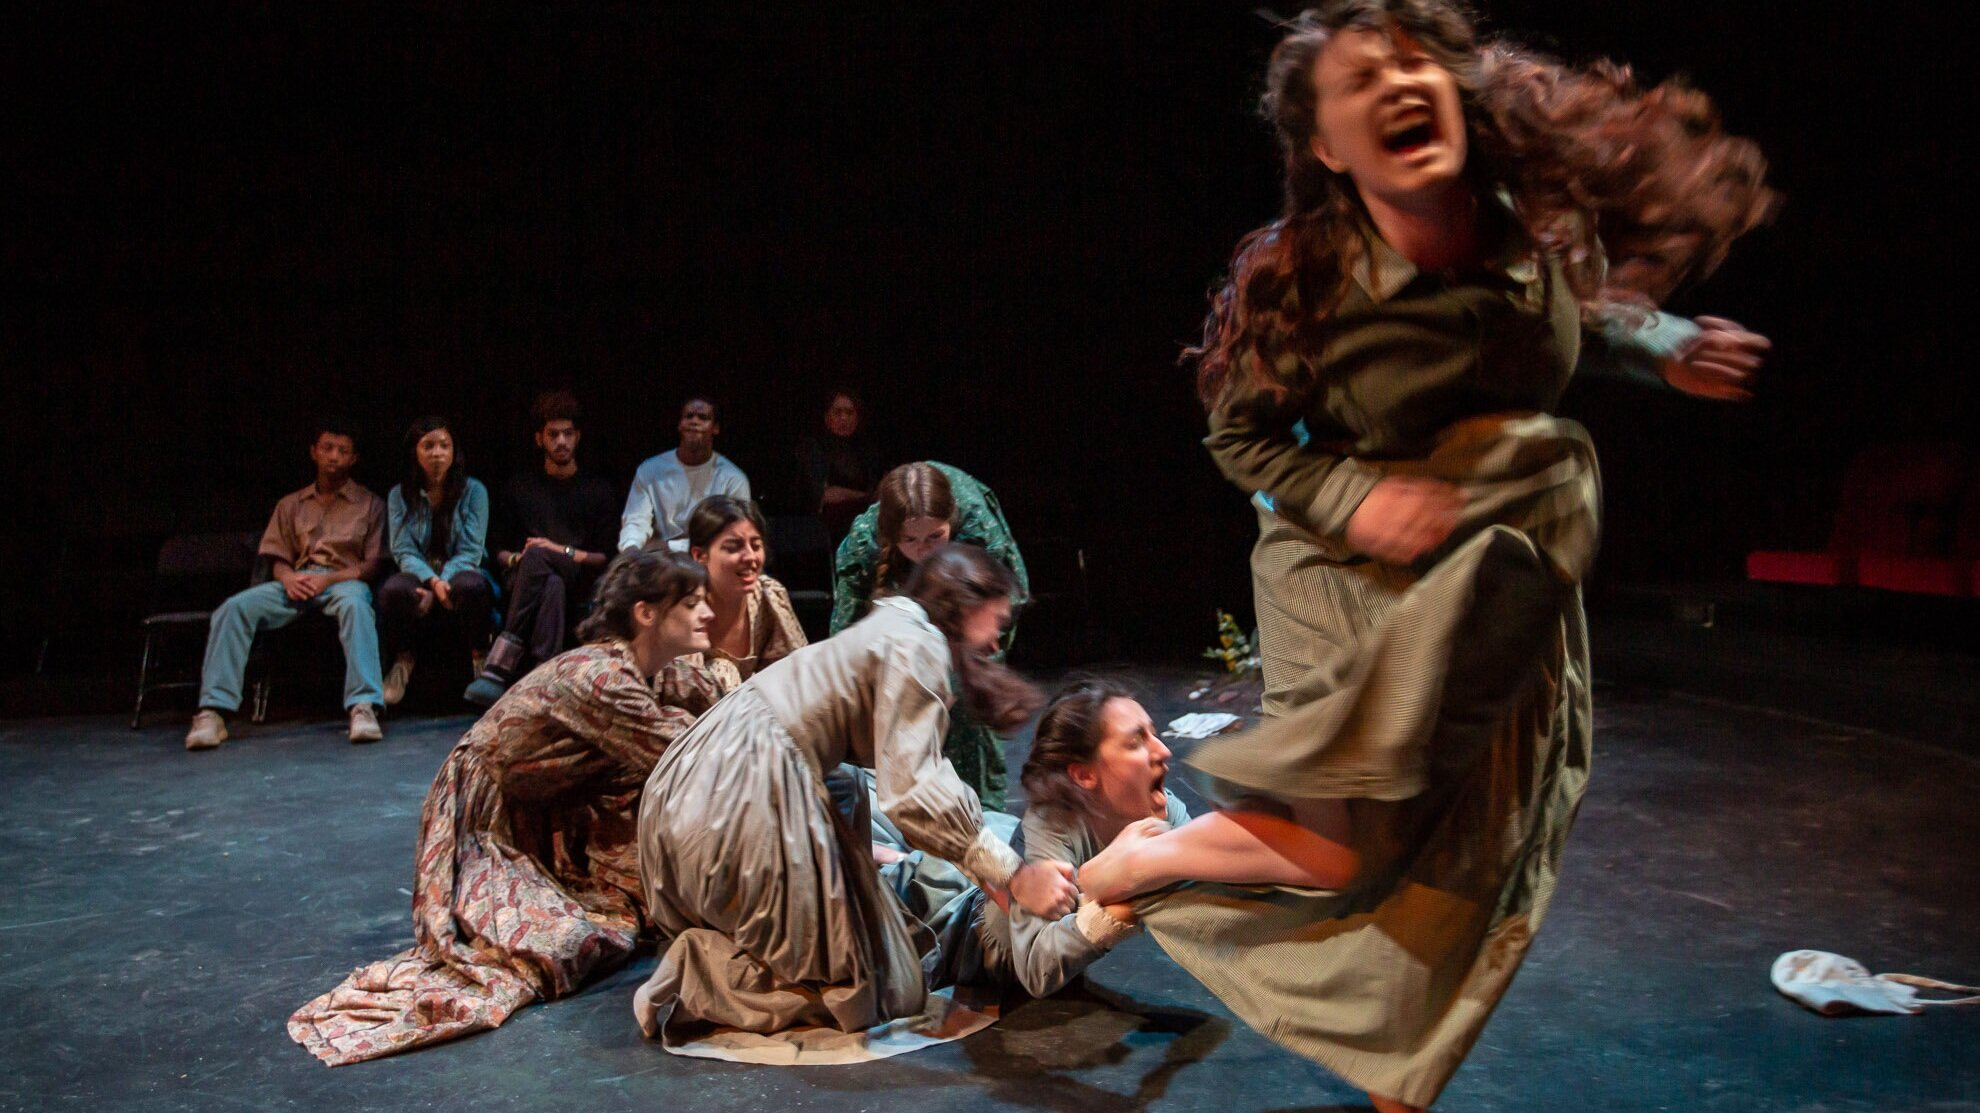 2019_NY_GradPlay_Sisters_on_the_Ground_Wyville_LOW-RES_026.jpg